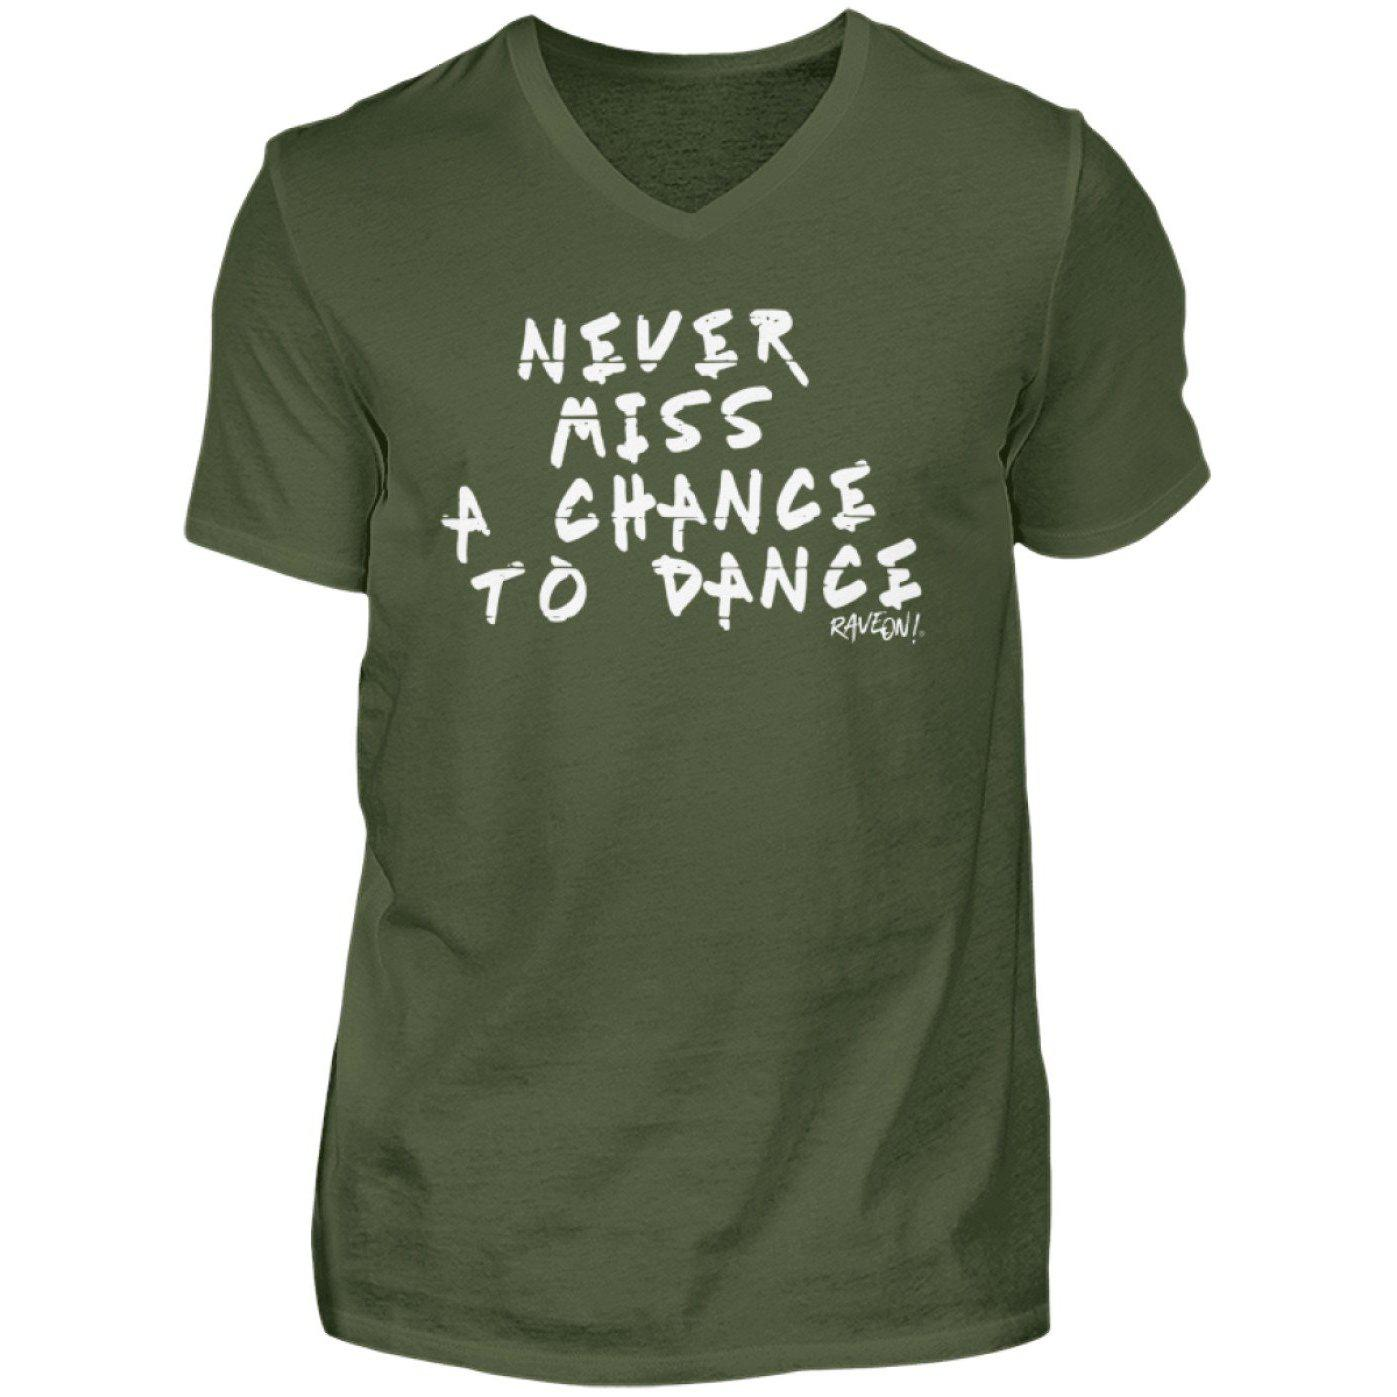 Never Miss A Chance to Dance - Rave On!® - Herren V-Neck Shirt V-Neck Herrenshirt City Green / S - Rave On!® der Club & Techno Szene Shop für Coole Junge Mode Streetwear Style & Fashion Outfits + Sexy Festival 420 Stuff